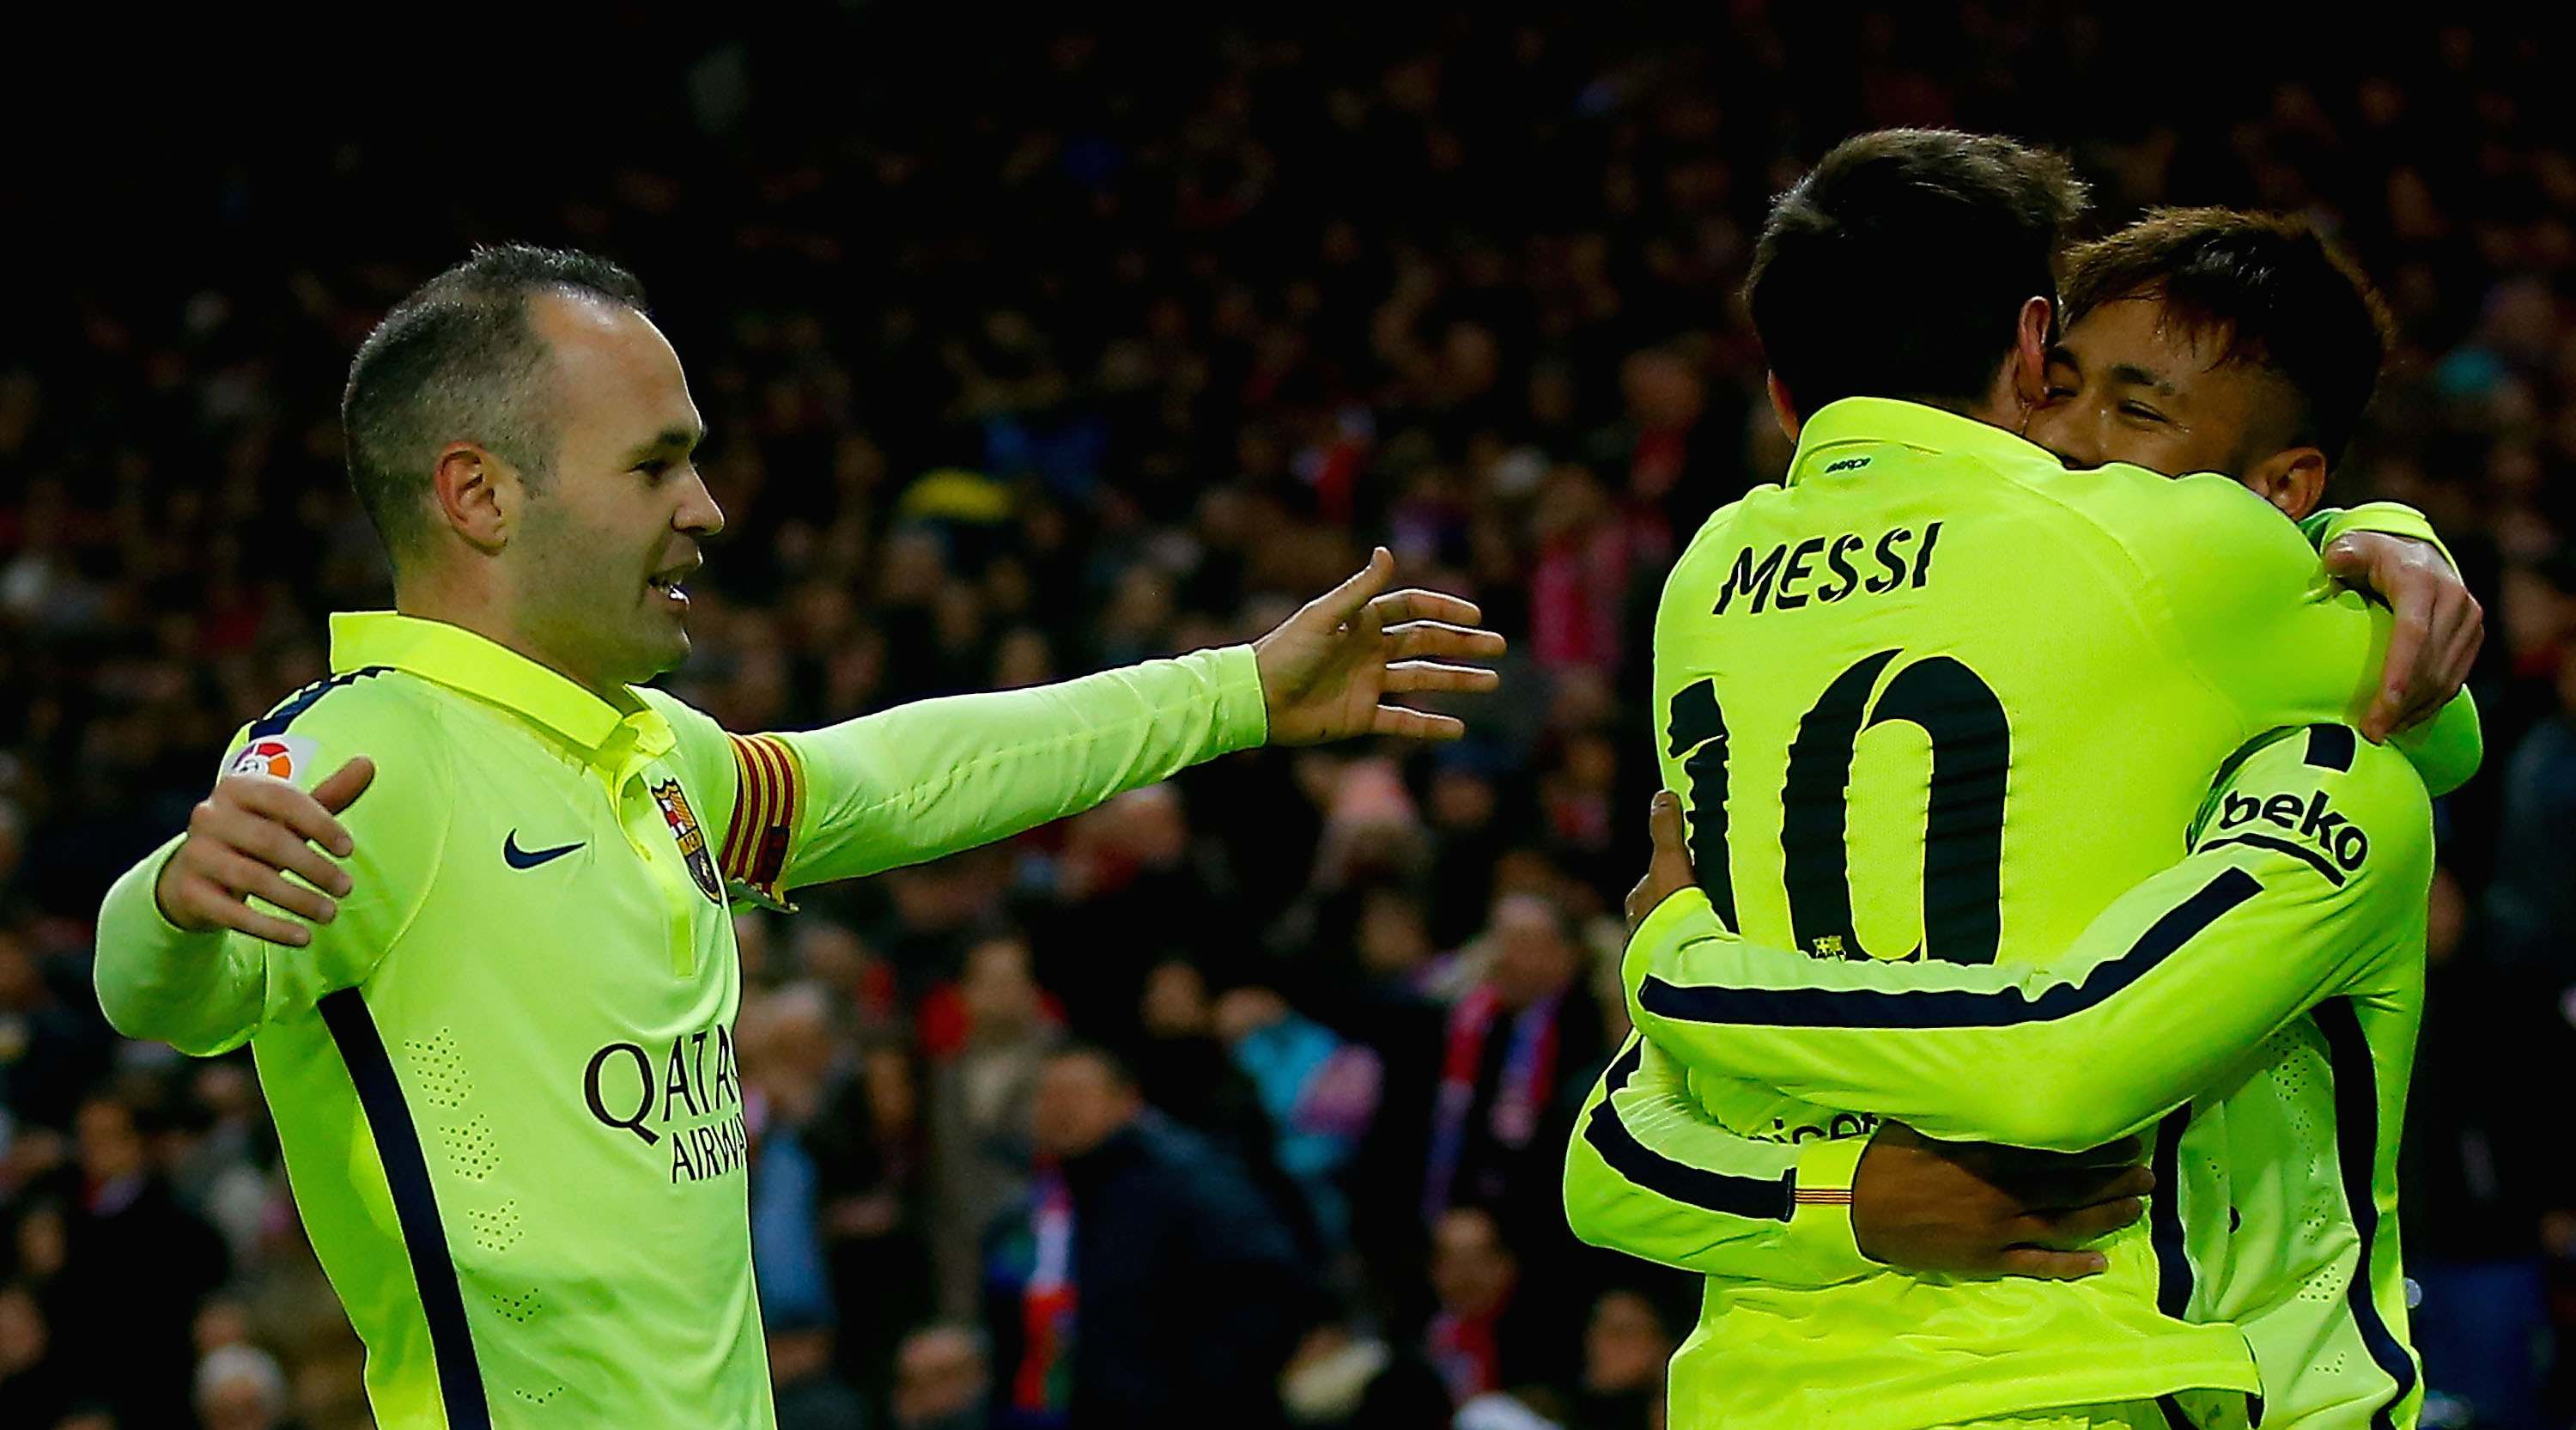 MADRID, SPAIN - JANUARY 28: Neymar JR. of FC Barcelona embraces his teammate Lionel Messi (2ndL) celebrating scoring their third goal as Andres Iniesta (L) approaches them during the Copa del Rey Round of 8 second leg match between Club Atletico de Madrid and FC Barcelona at Vicente Calderon Stadium on January 28, 2015 in Madrid, Spain. (Photo by Gonzalo Arroyo Moreno/Getty Images)